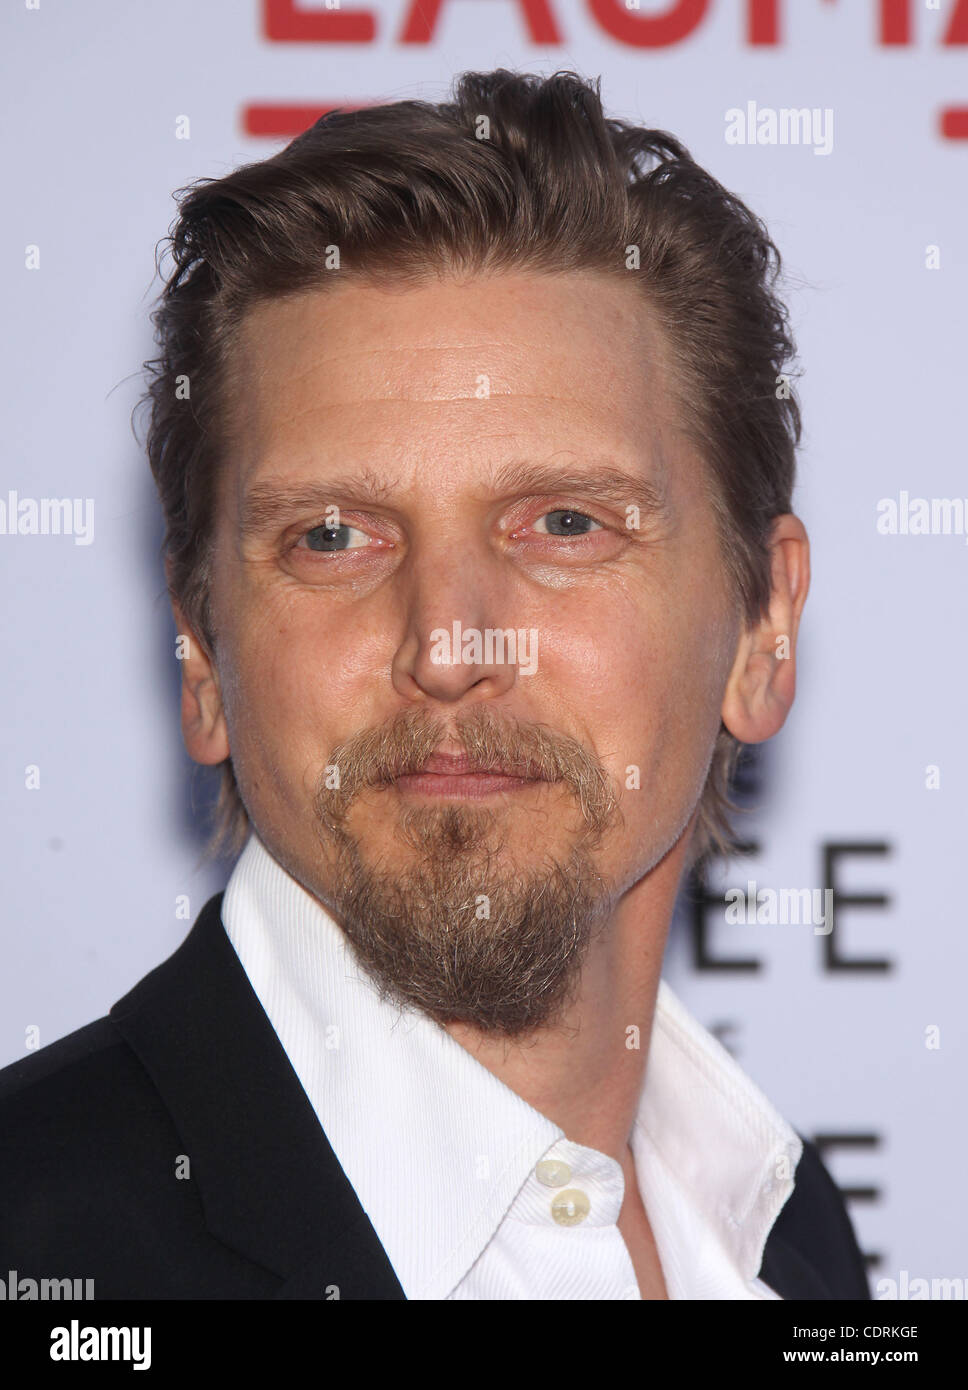 May 24, 2011 - Los Angeles, California, U.S. - BARRY PEPPER arrives for the premiere of the film 'Tree Of Life' - Stock Image